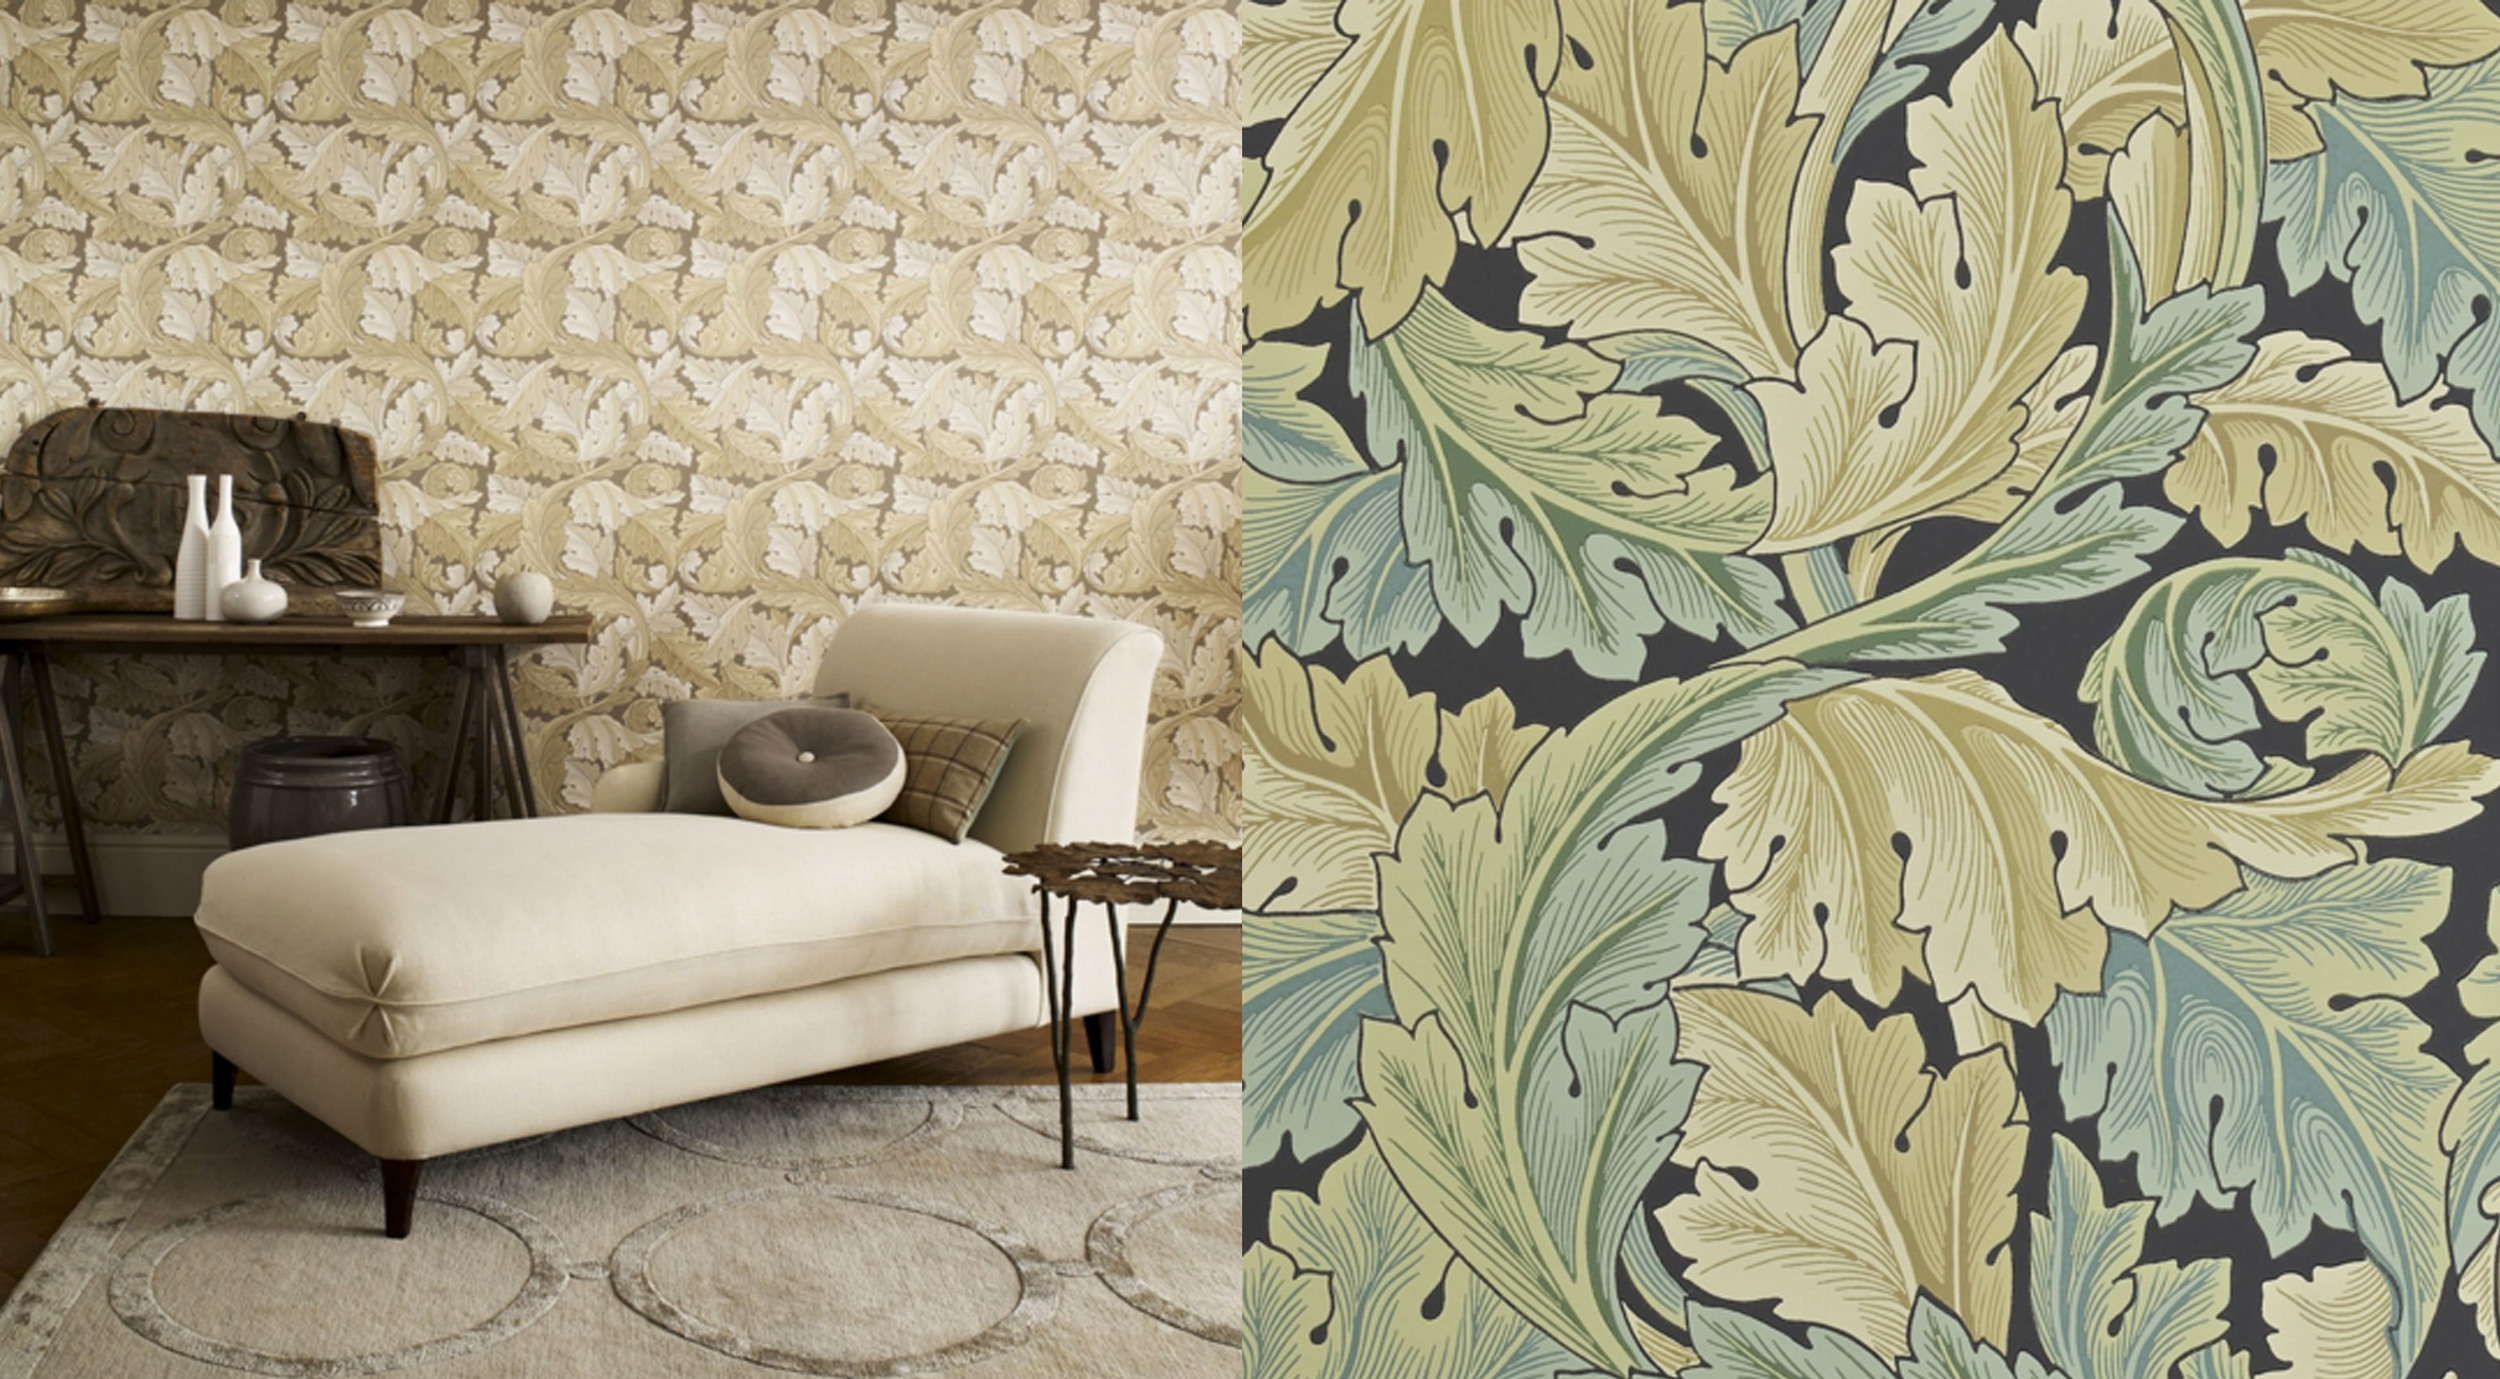 Acanthus designed in 1874 - a large scale design for wallpaper with a complex layering, produces a 3-dimensional effect